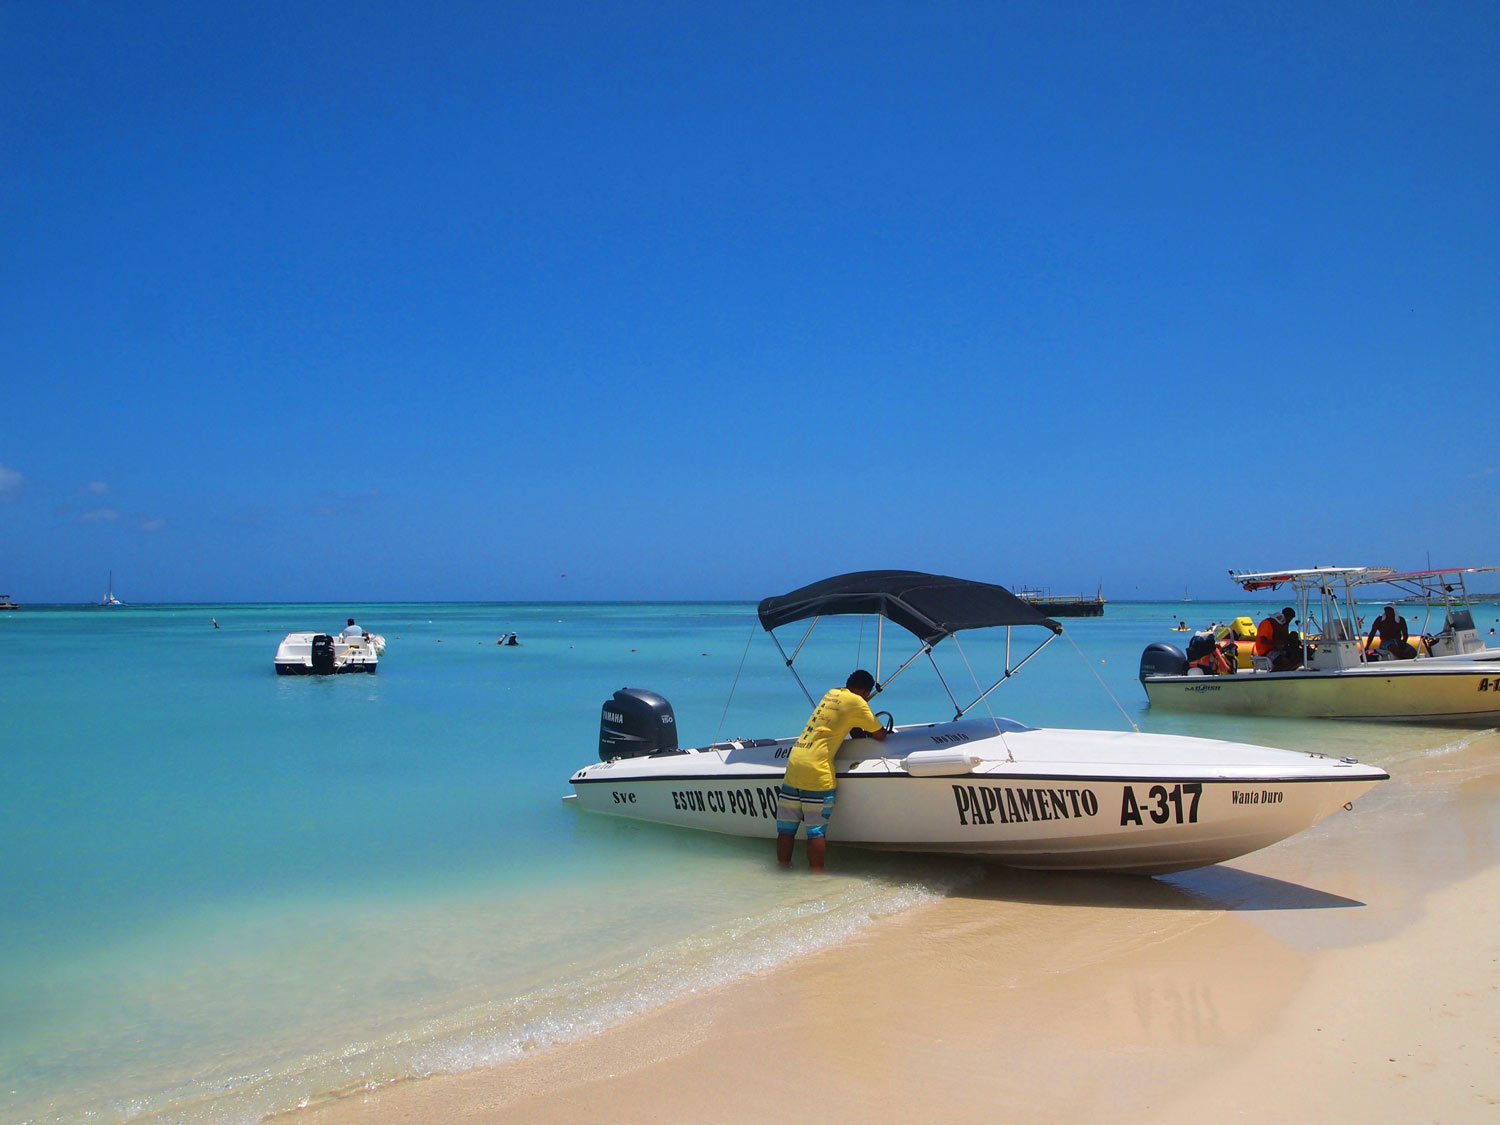 Aruba-Palm-Beach-small-boats.jpg